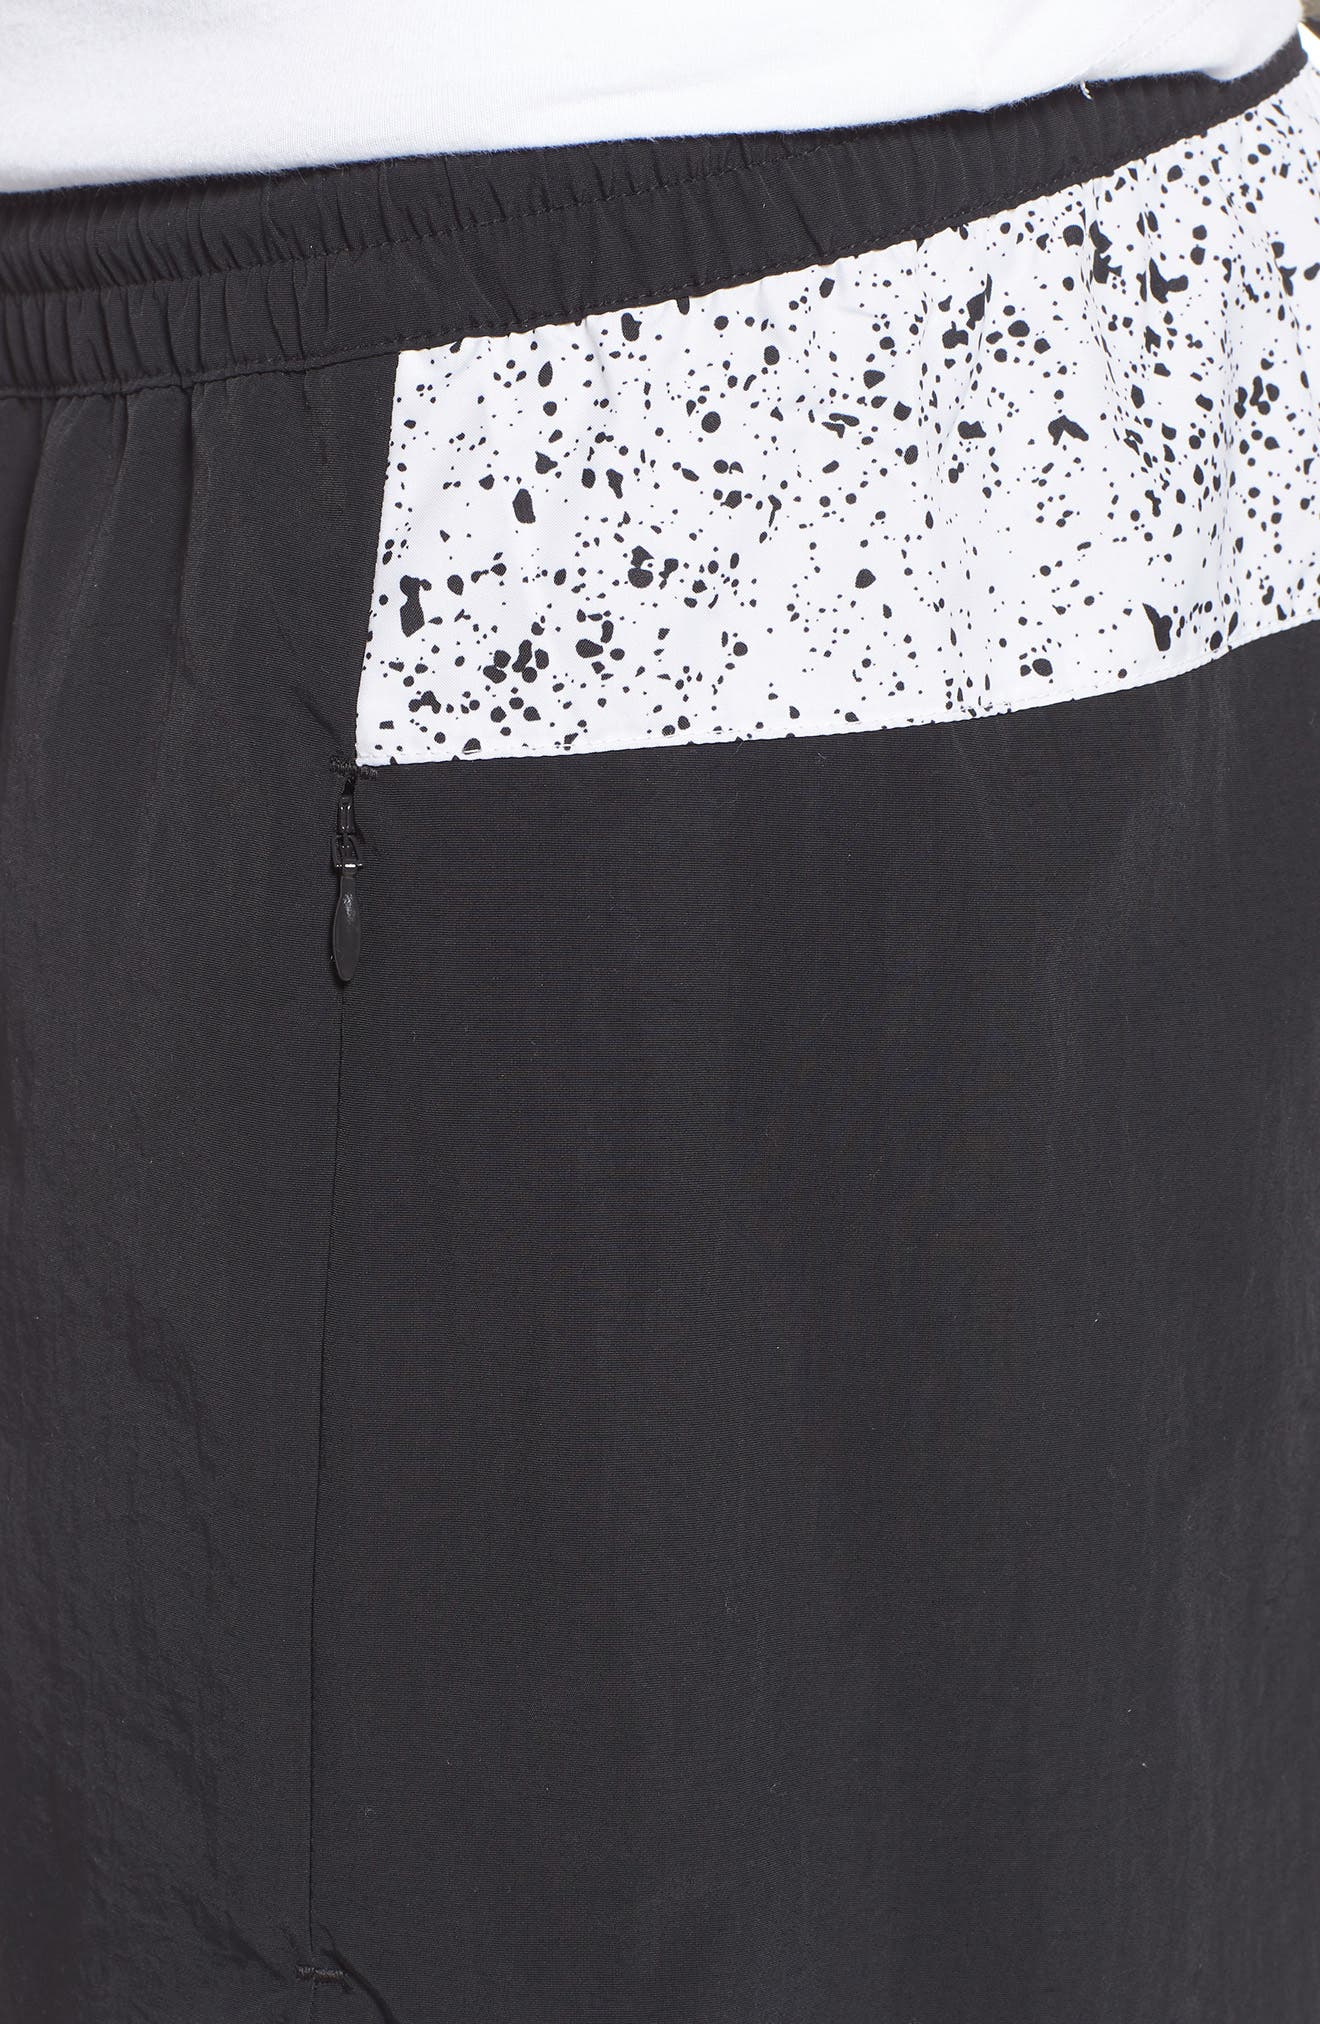 adidas Planetoid Track Pants,                             Alternate thumbnail 4, color,                             001